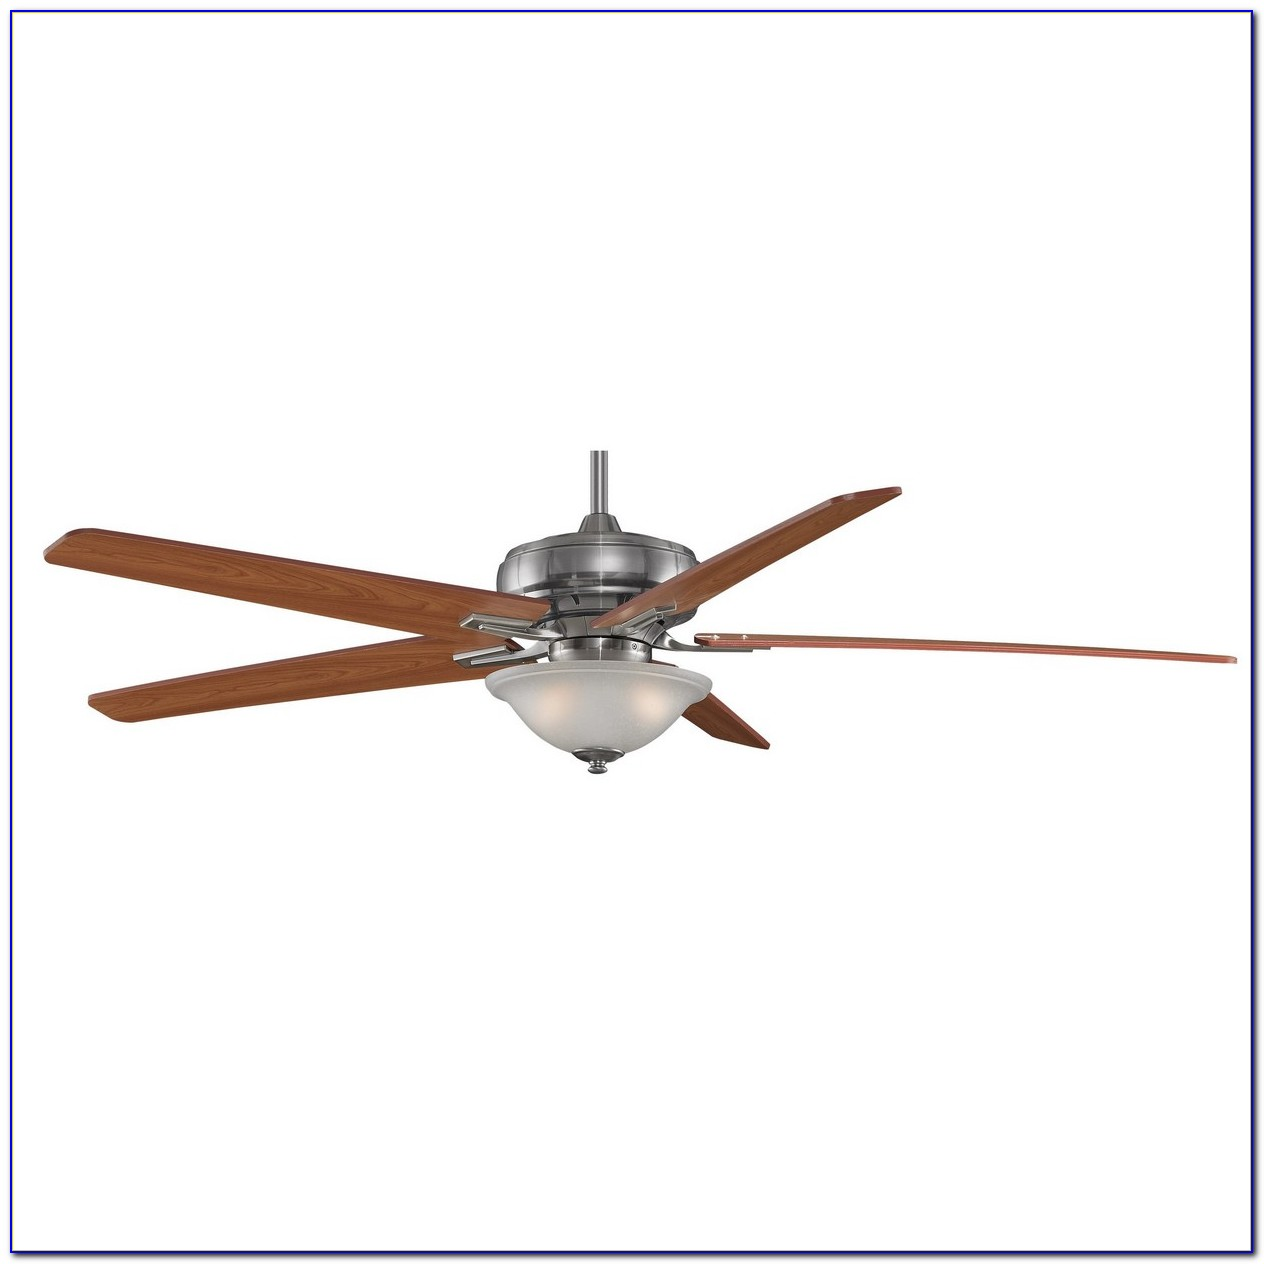 72 Inch Ceiling Fan With Light And Remote